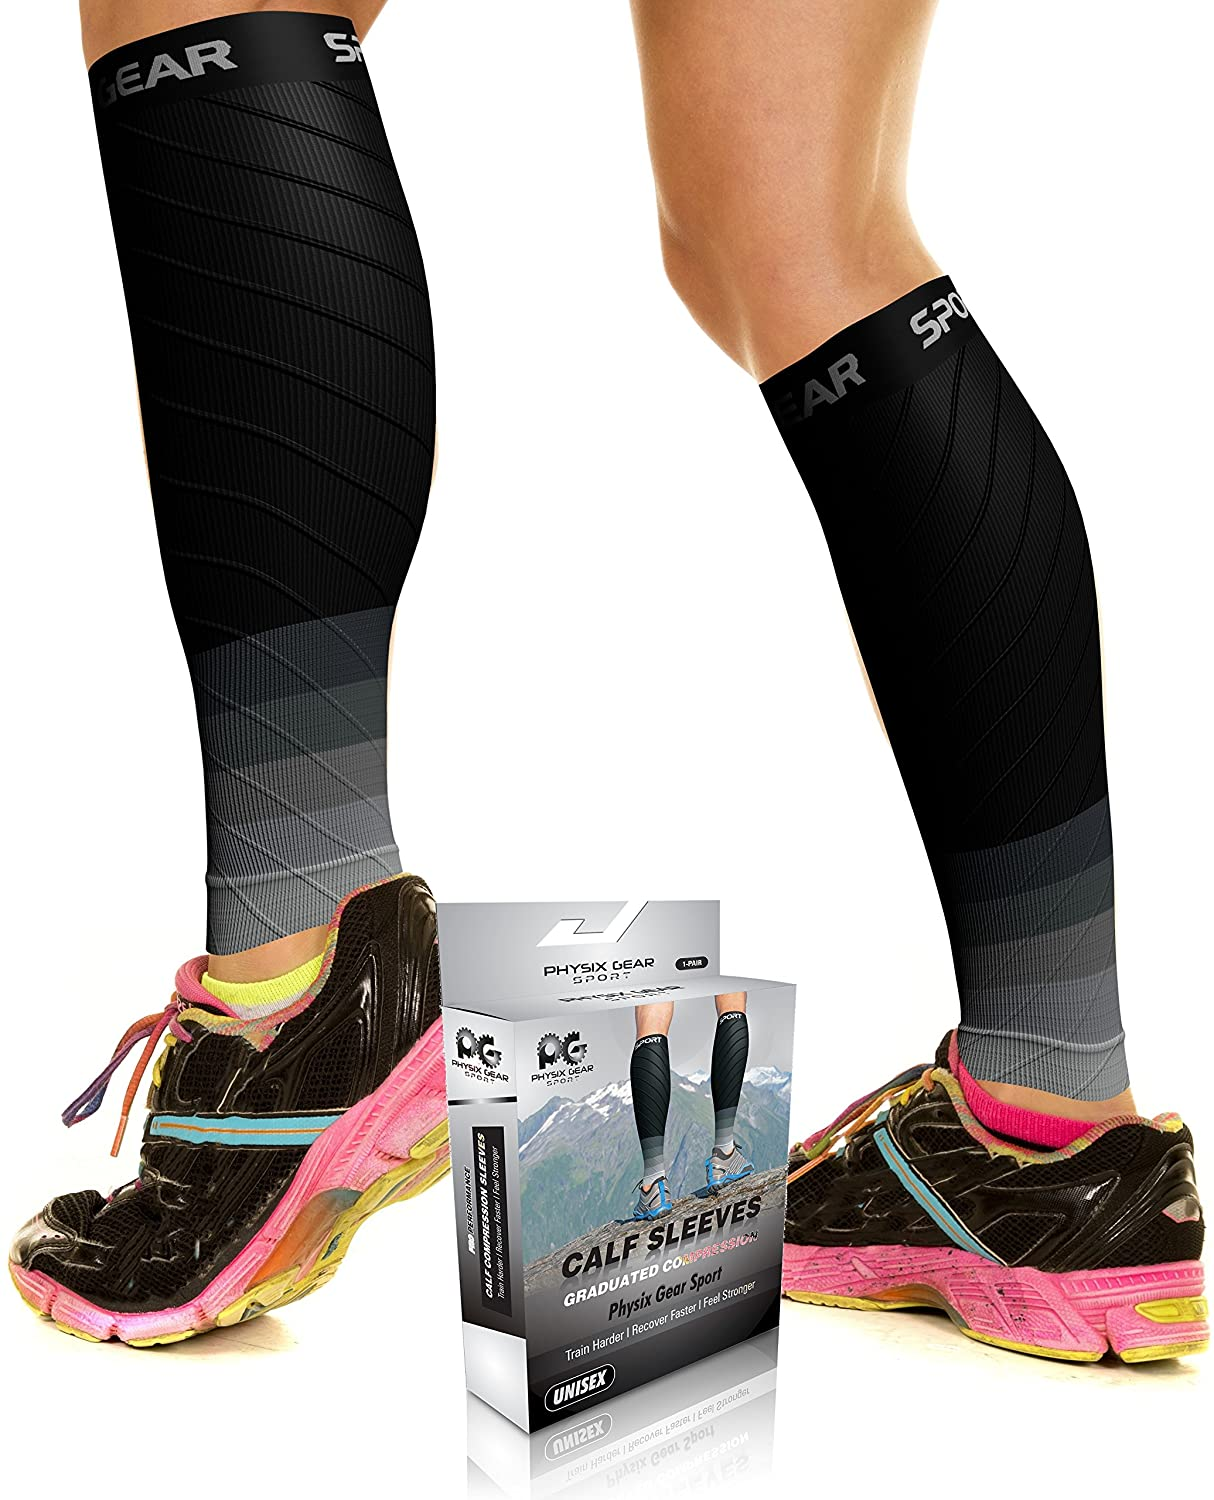 Physix Gear Compression Sleeves